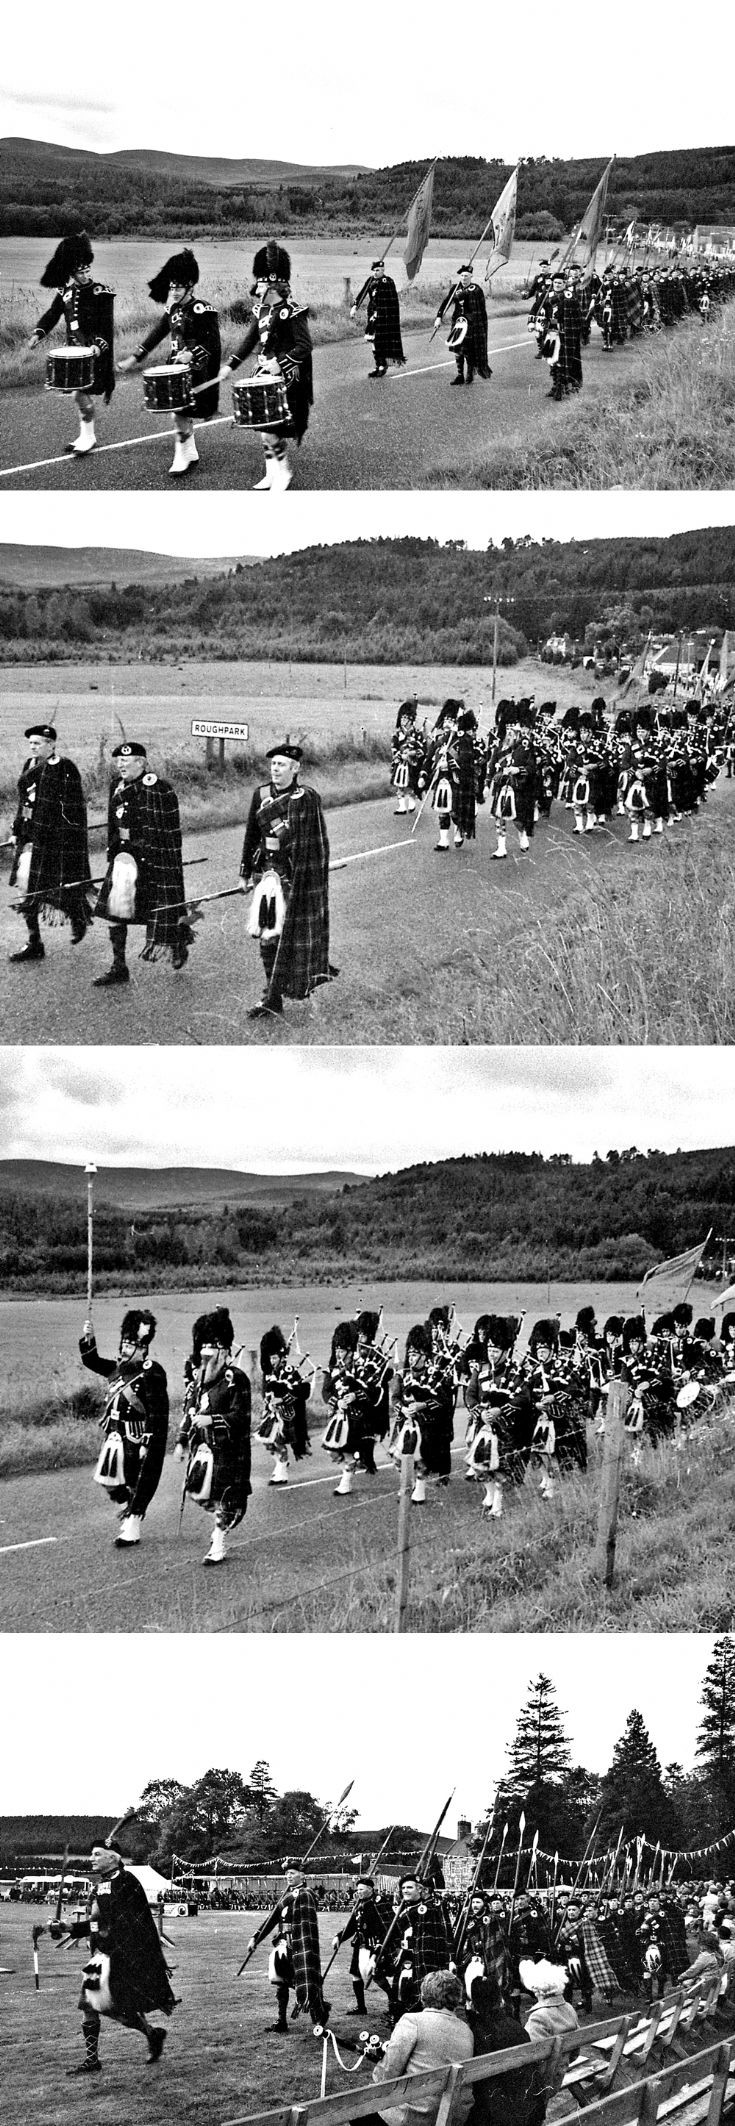 22 Lonach Marchers c1980